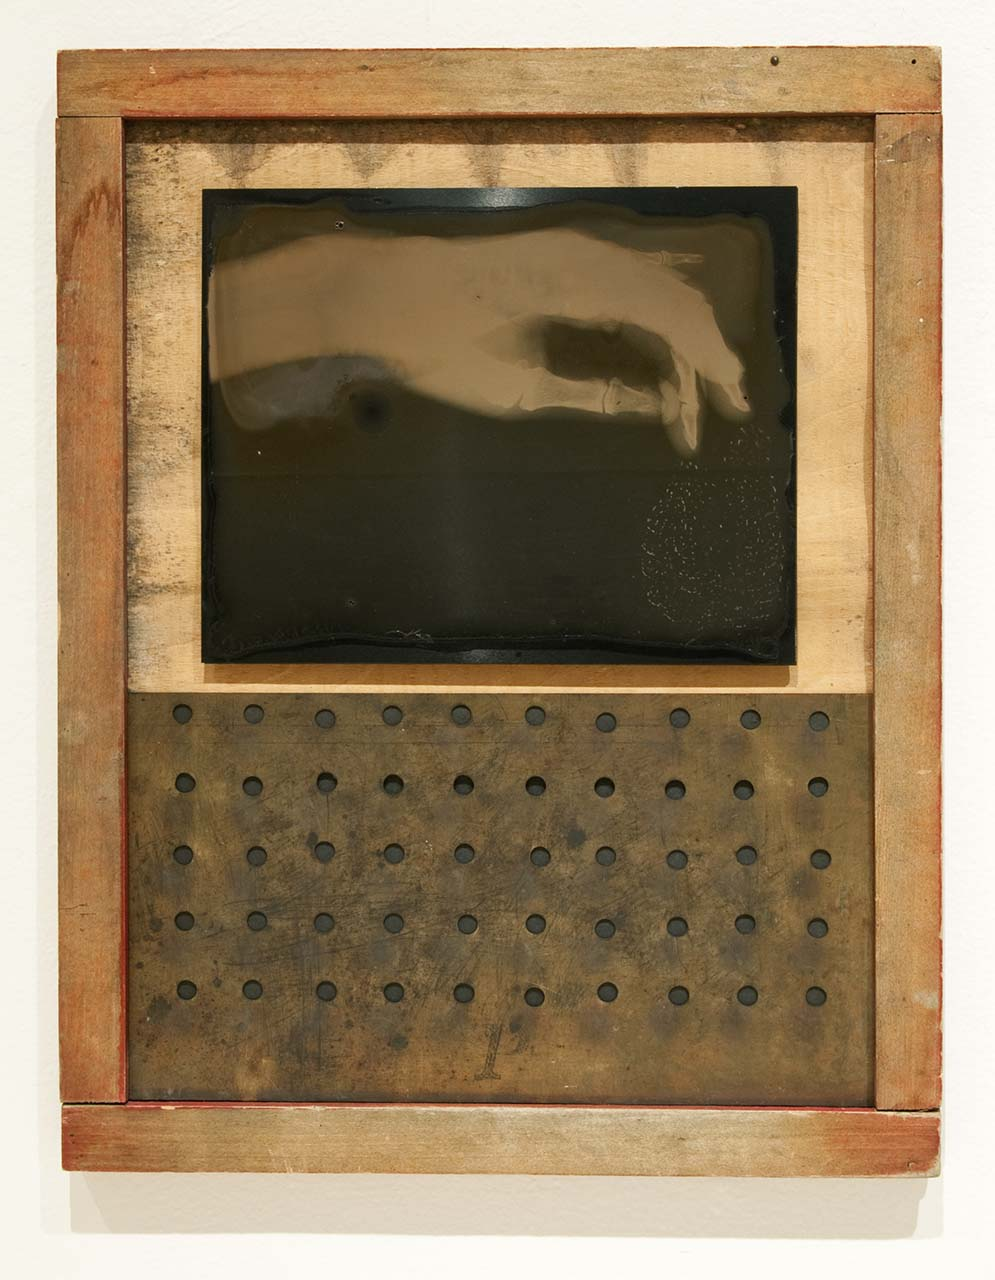 Beverly_Rayner_Tintype_Xrayograph_of_a_Spellcaster's_Hand_72_